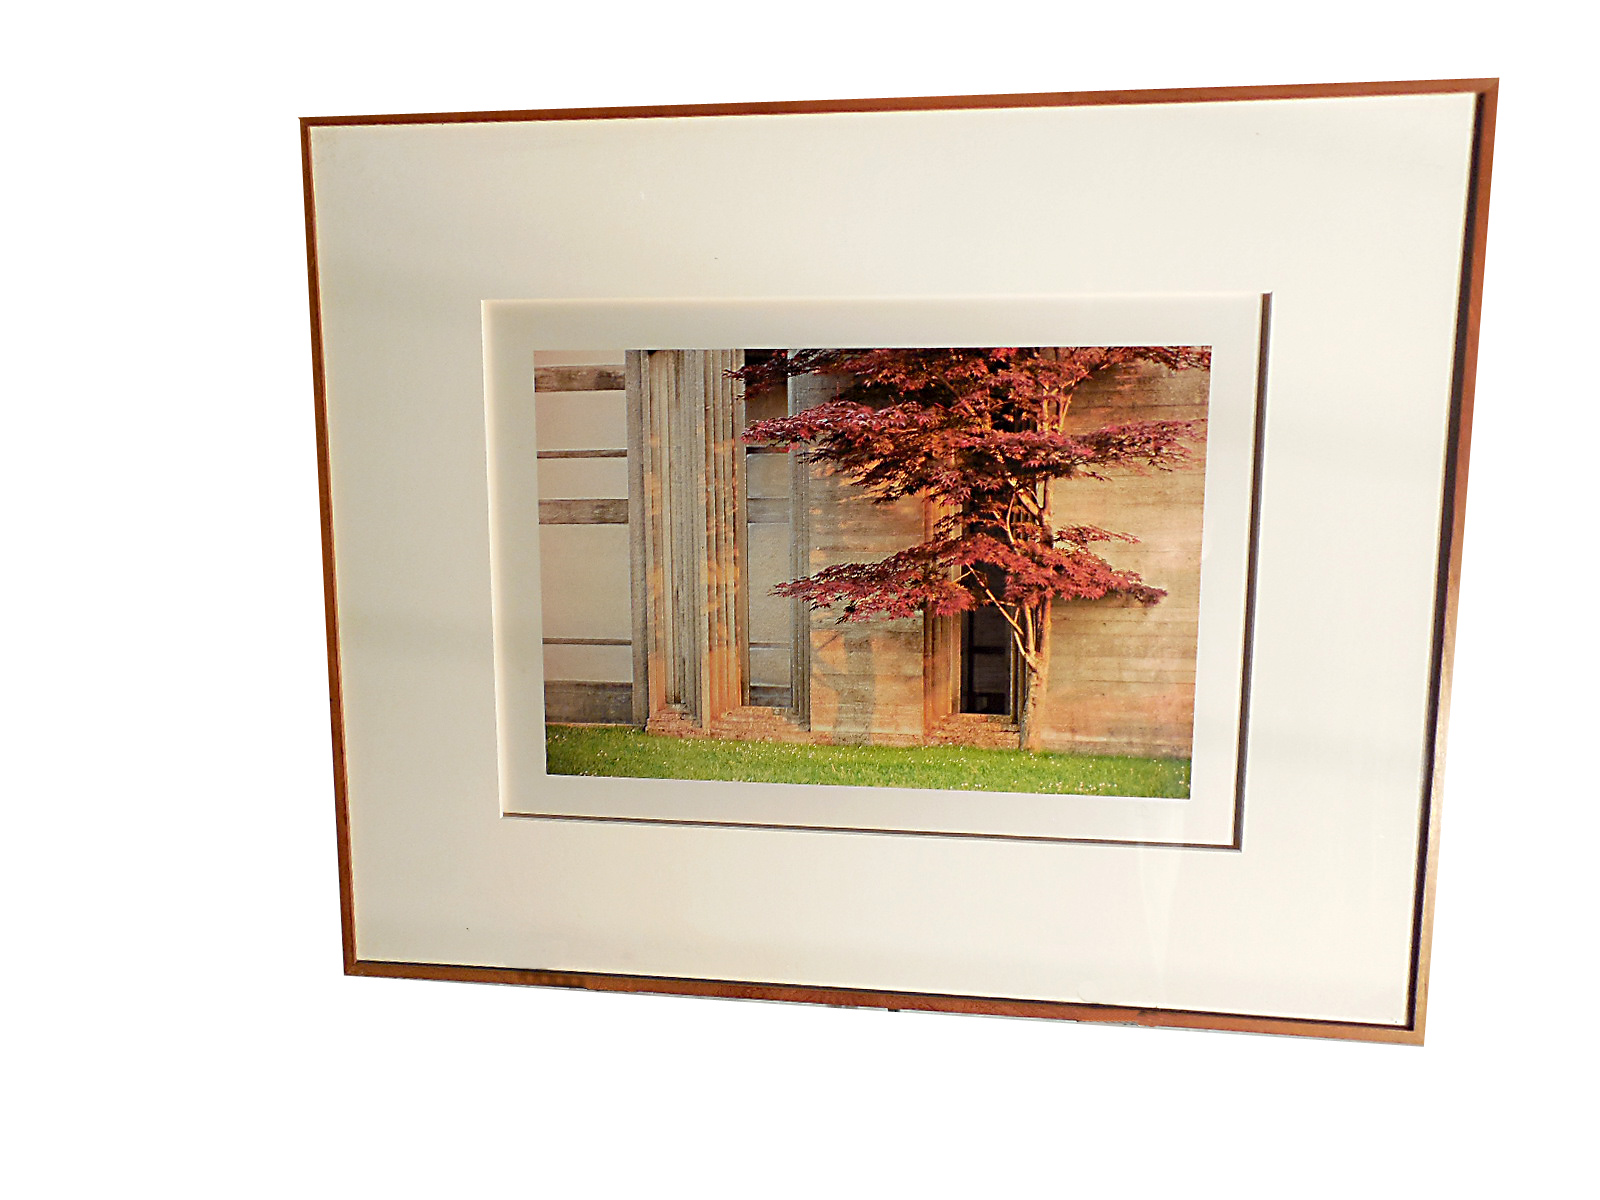 Framed Color Photo by Jim Laser